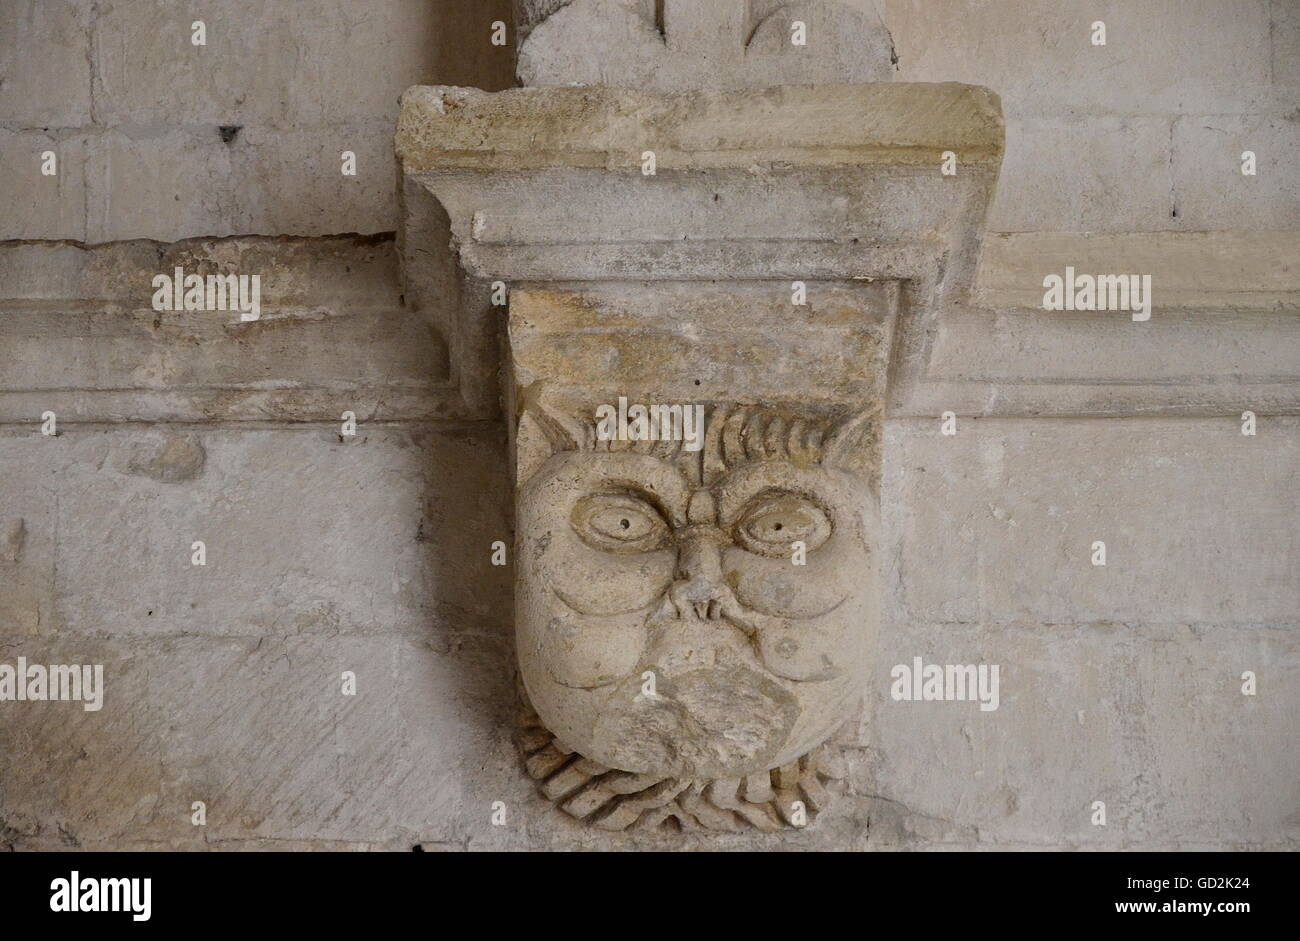 fine arts, romanesque period, carving of a tarasque, the legendary monster of Provence, devouring a man, Cloister - Stock Image